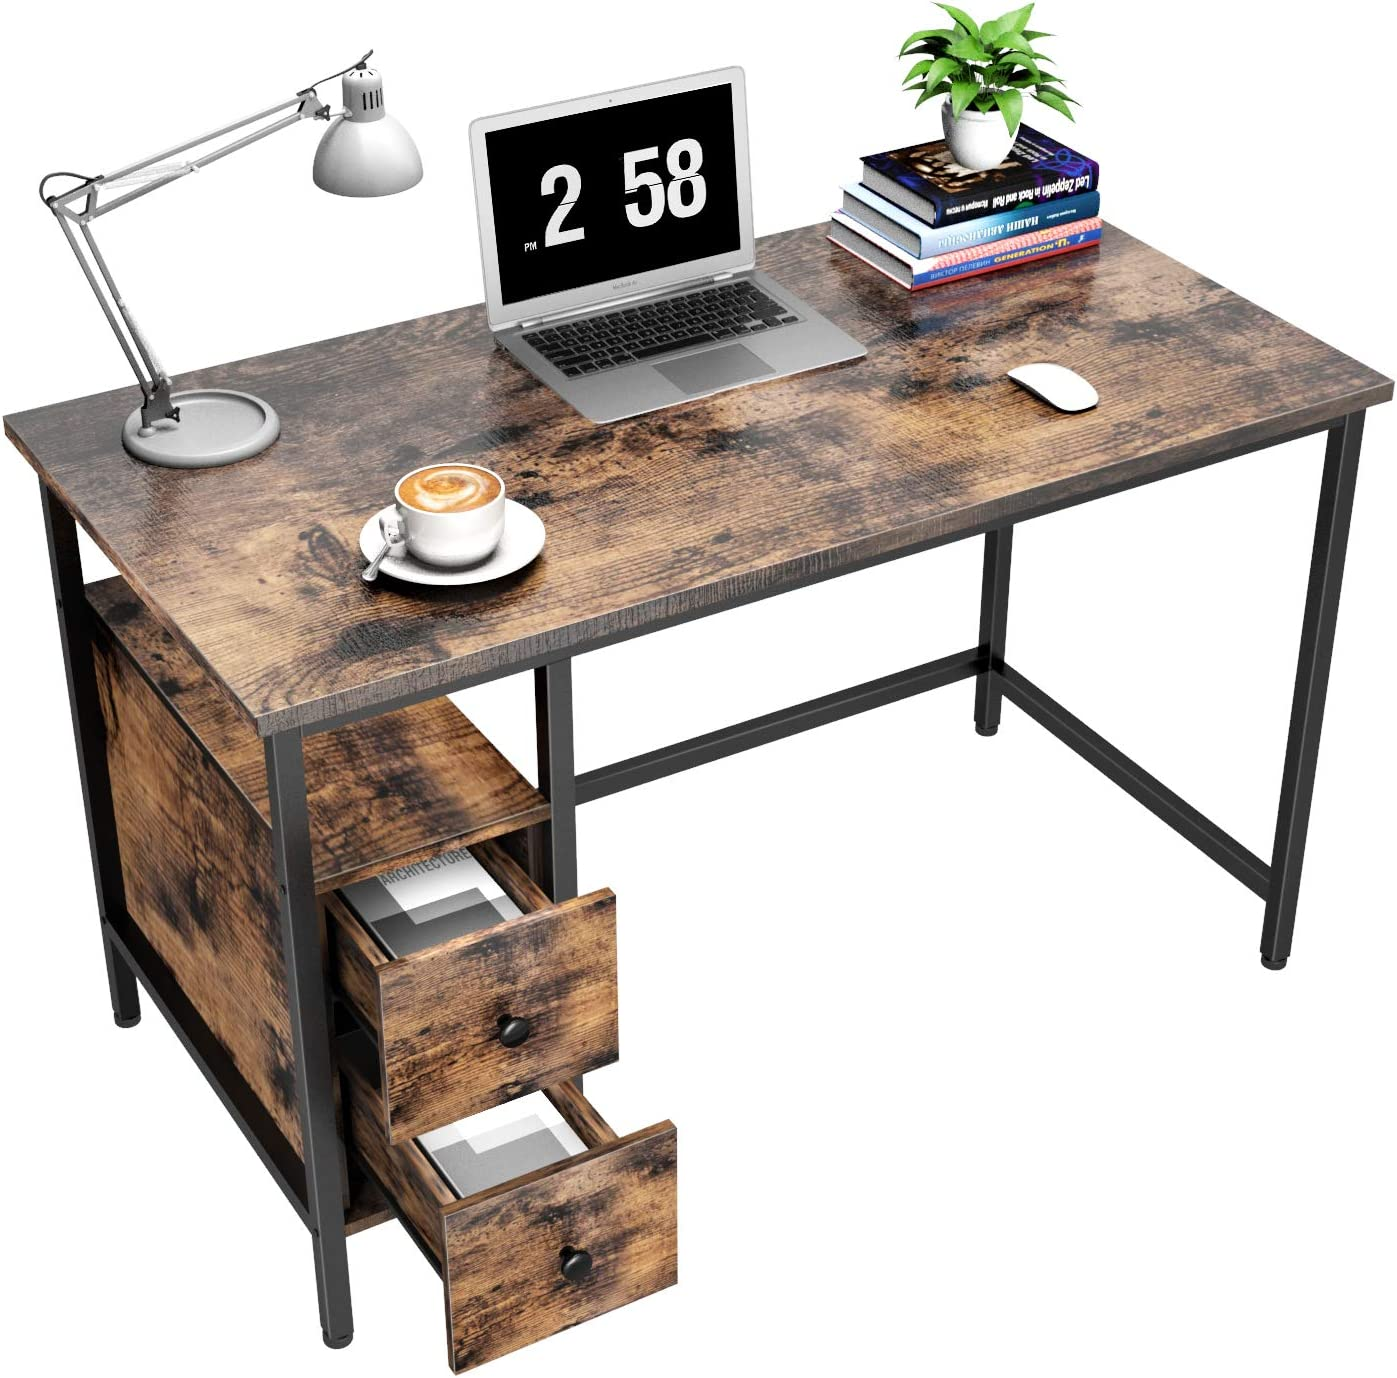 GIKPAL Computer Desk for Home Office, Study Writing Desk with 2 Drawers, Desk with Storage for Bedroom 47 inch, Black/Retro (Retro)